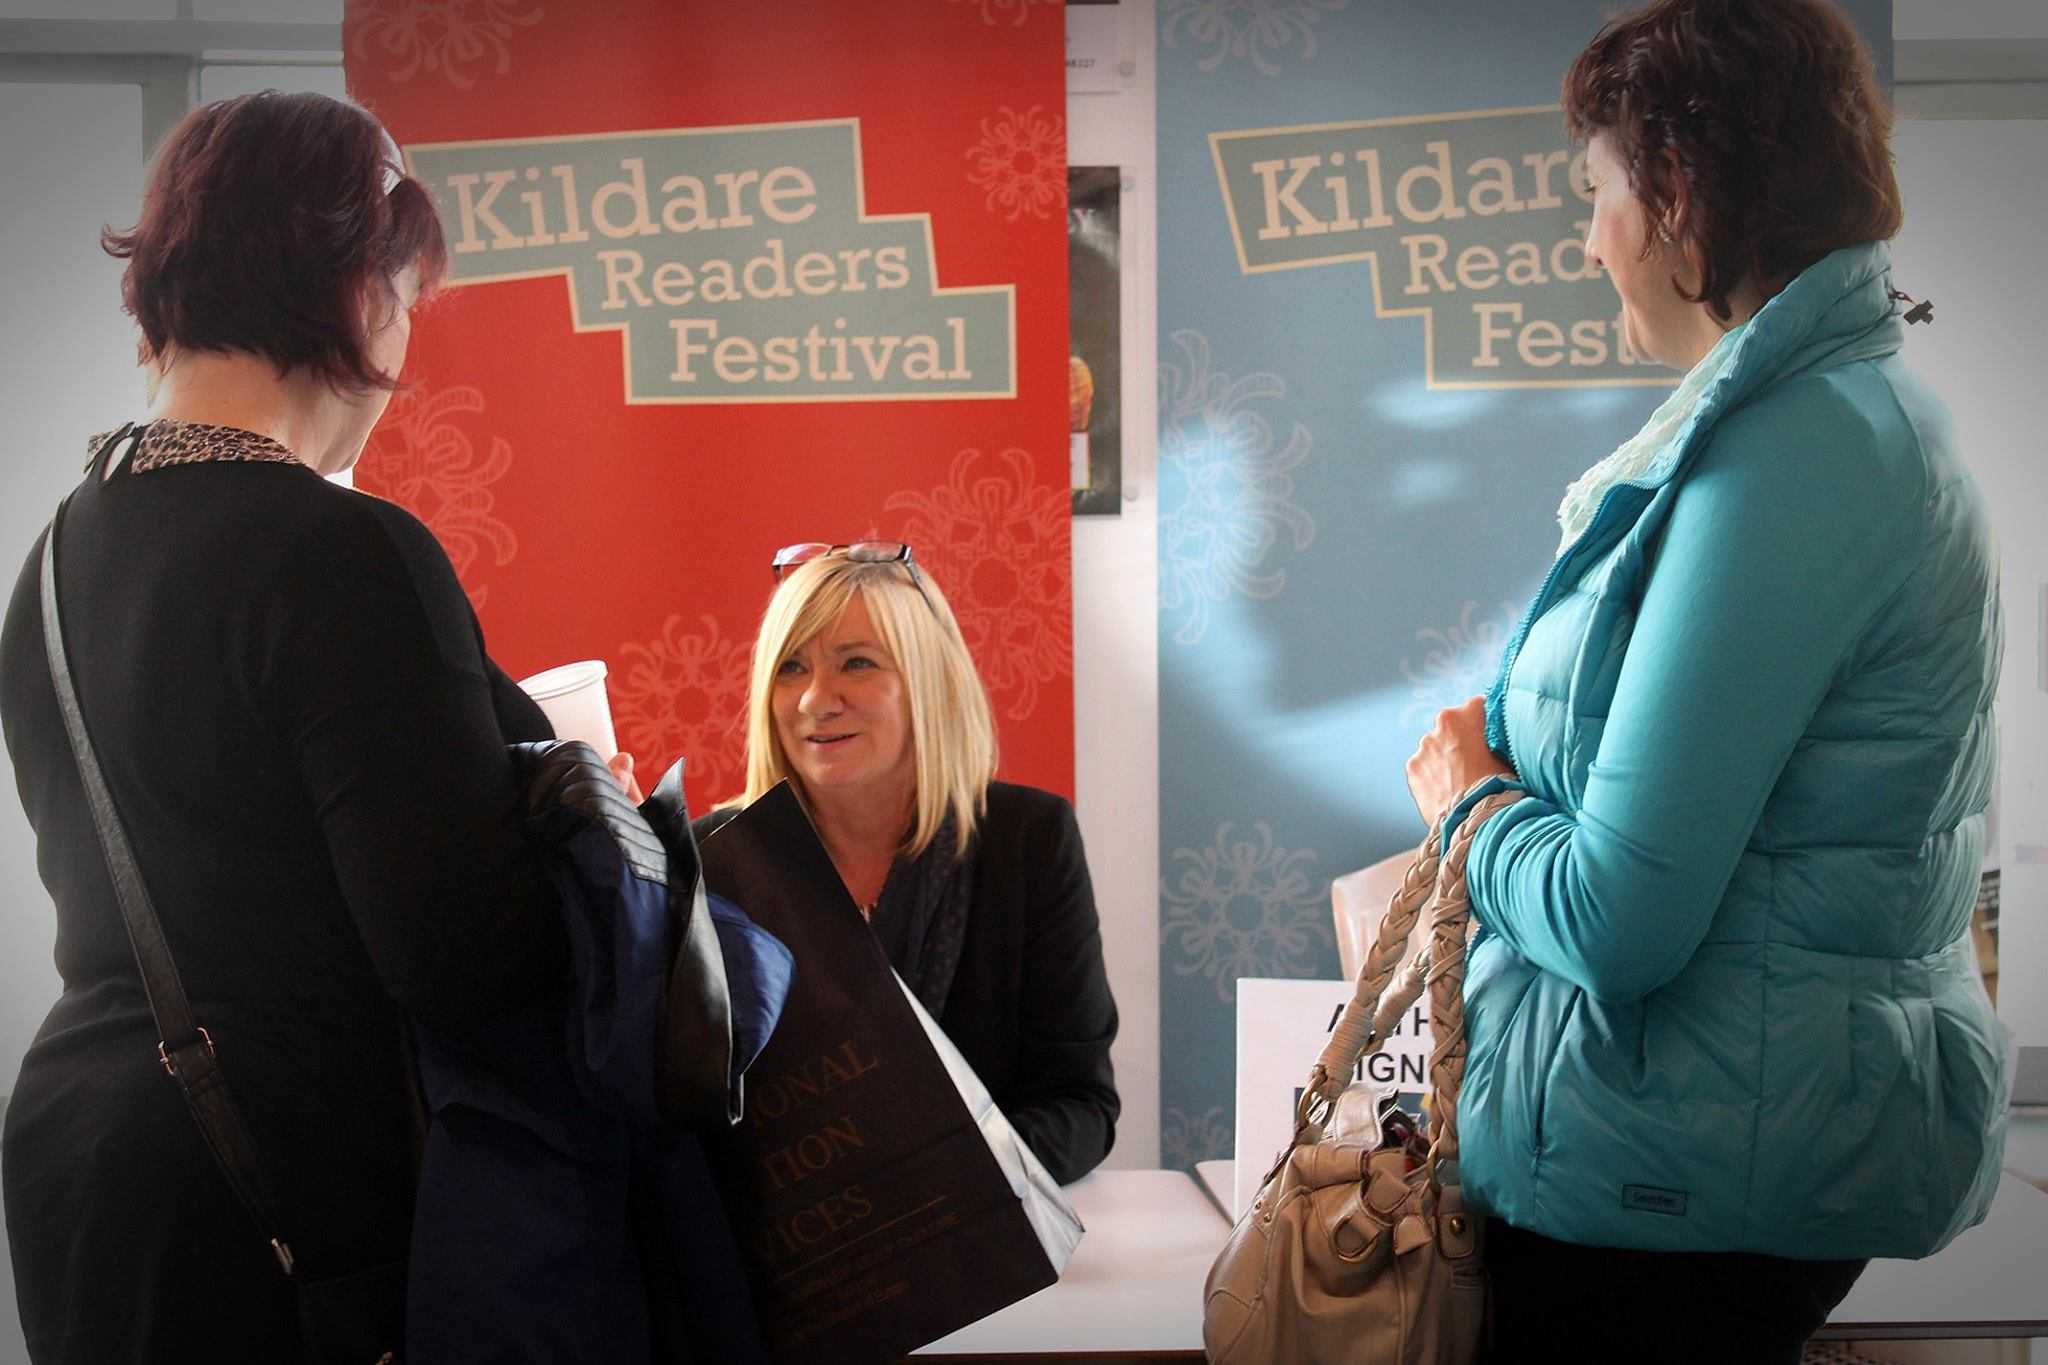 Kildare Readers 2